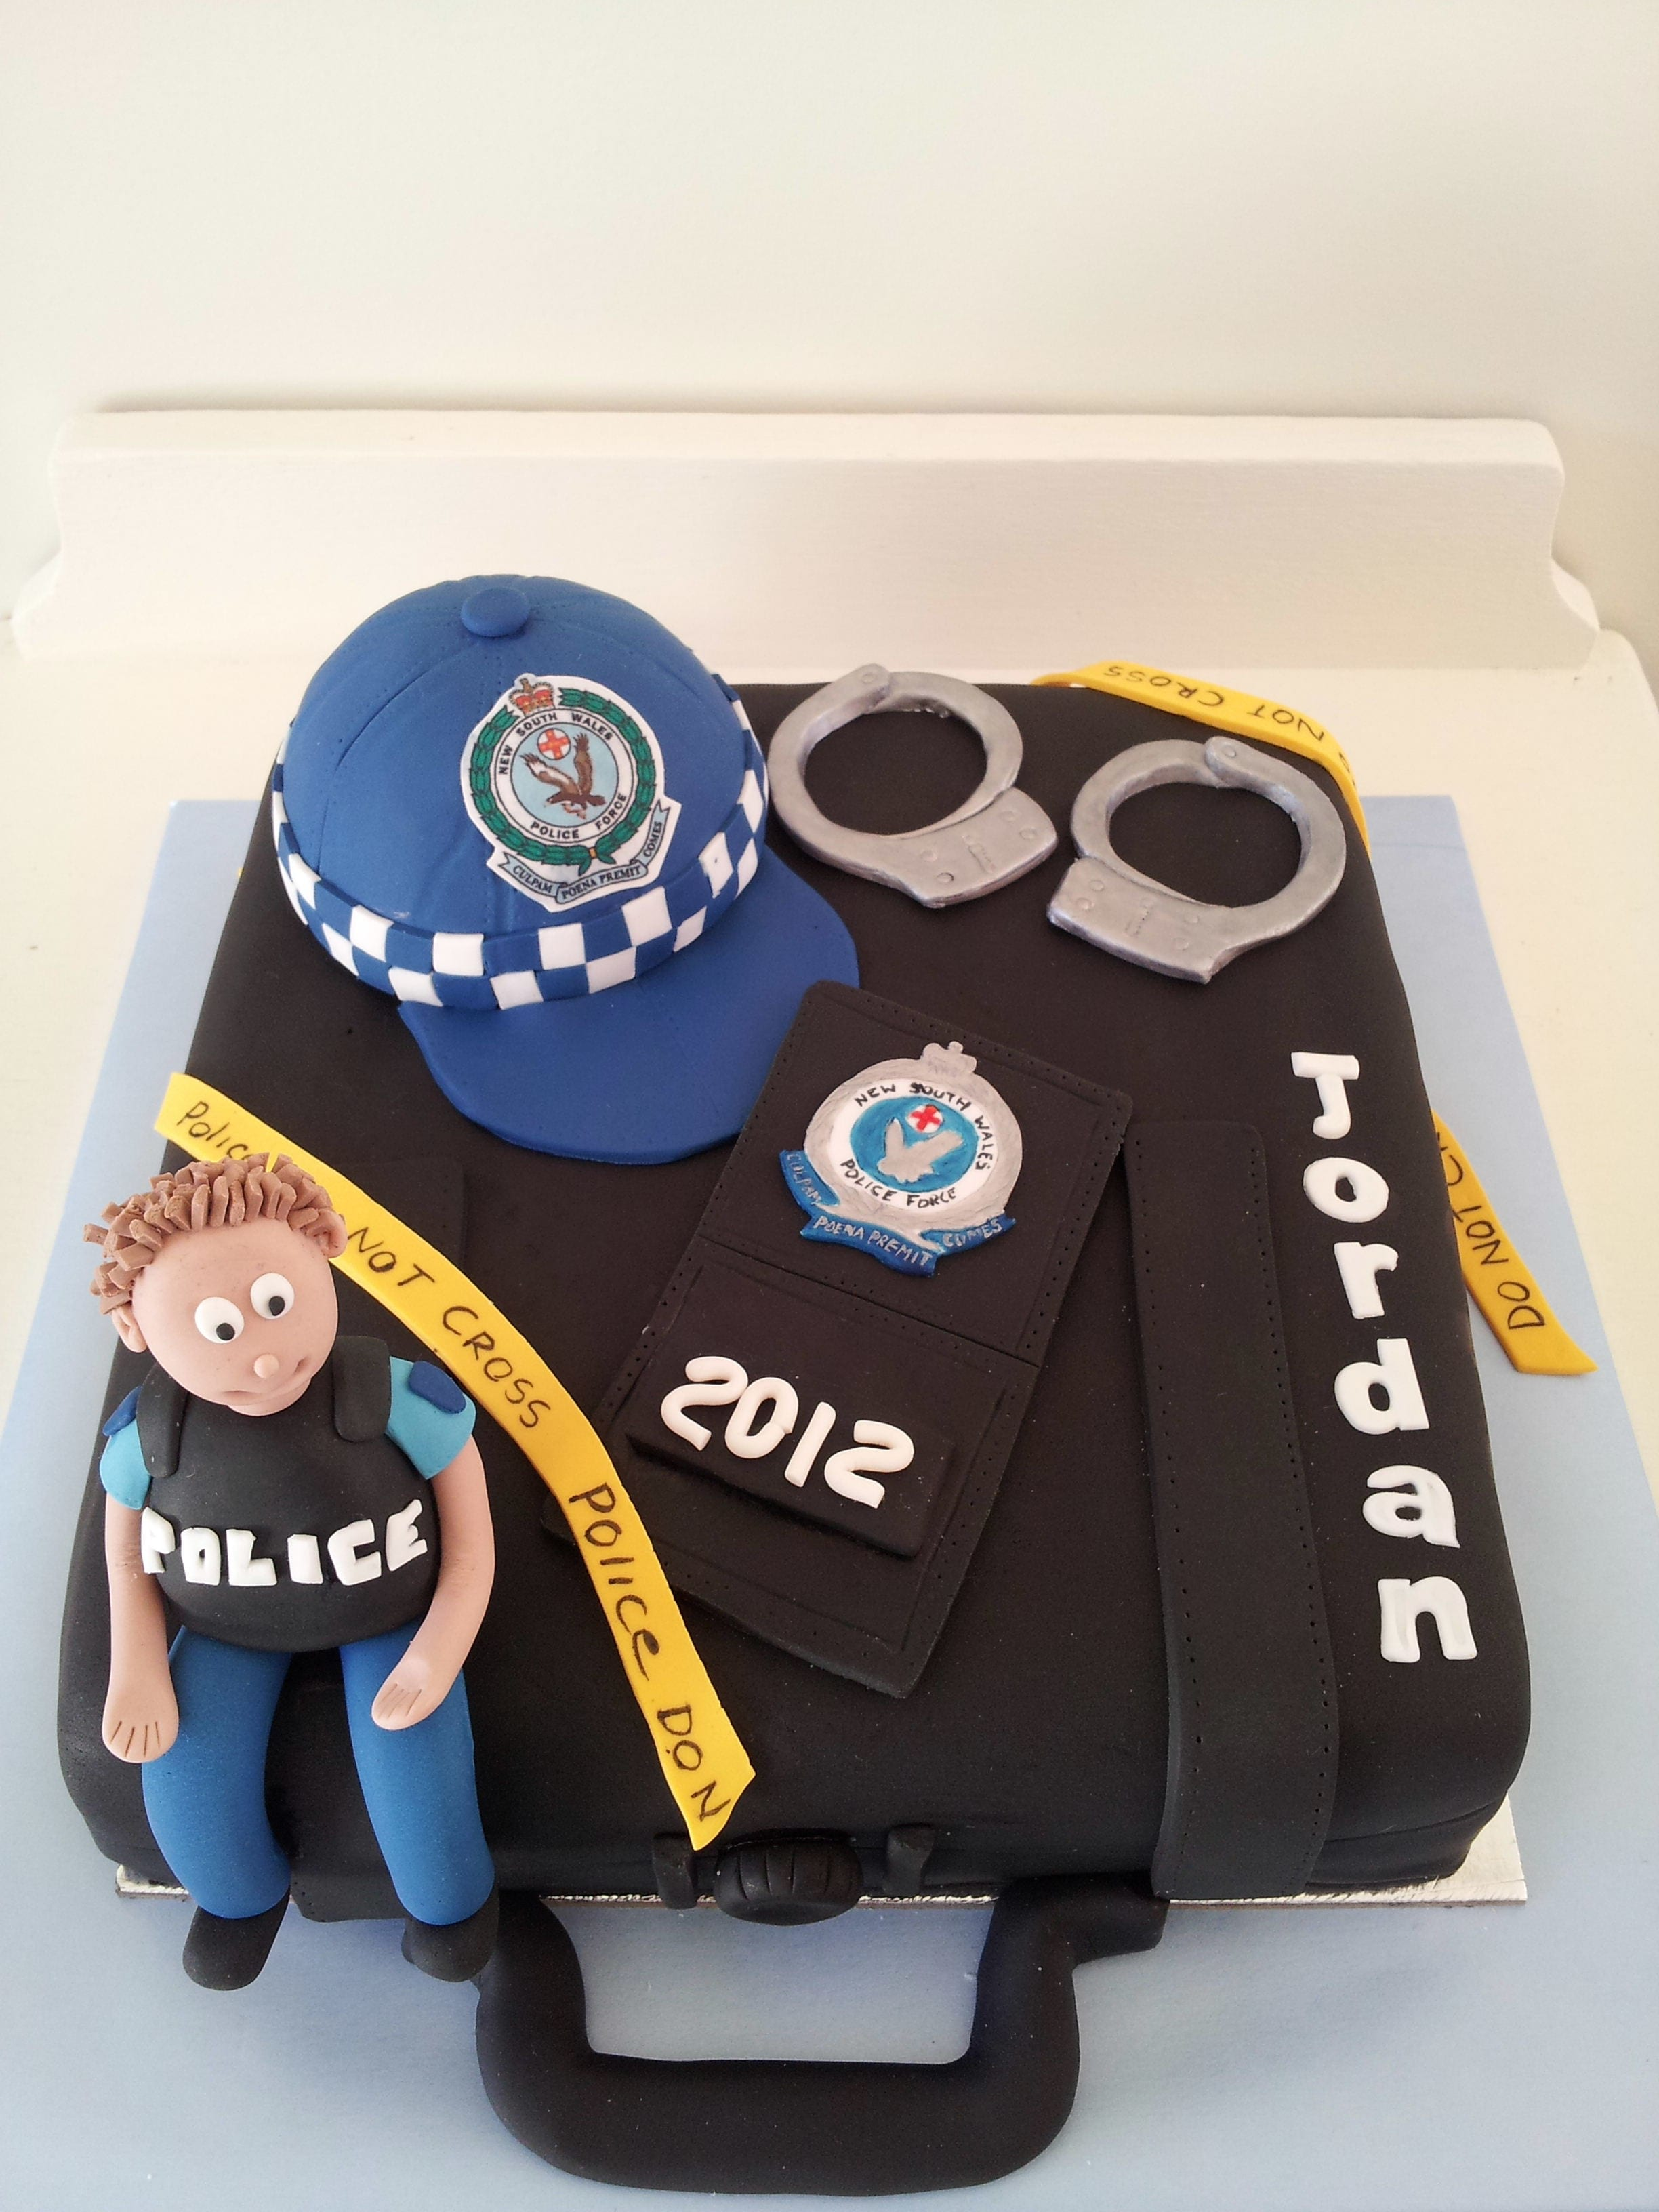 Cake Decorations For Police Cake : Police Graduation Cake - The Quirky Cake Society